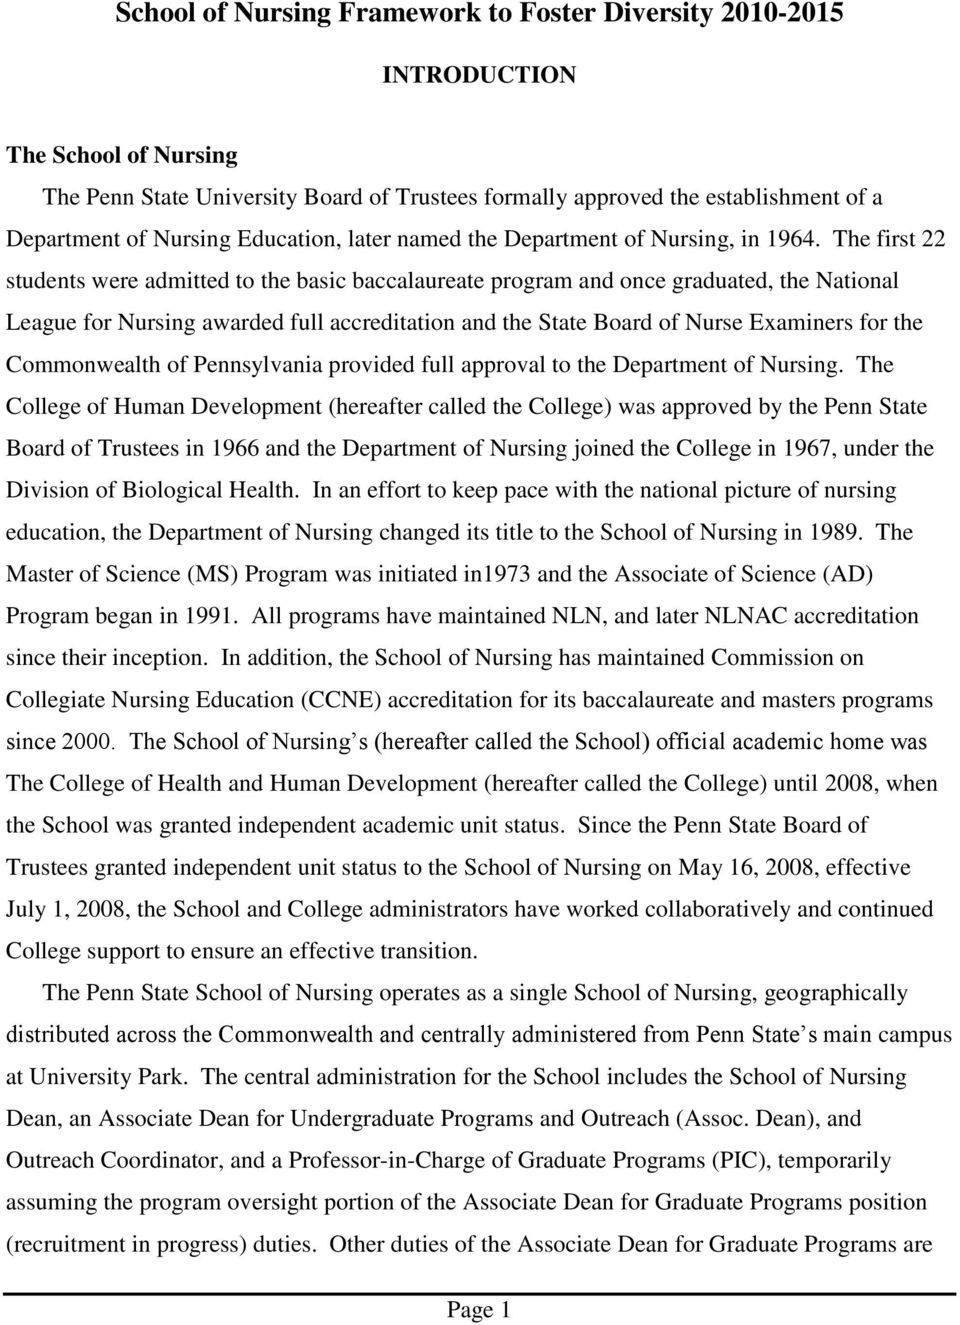 The first 22 students were admitted to the basic baccalaureate program and once graduated, the National League for Nursing awarded full accreditation and the State Board of Nurse Examiners for the